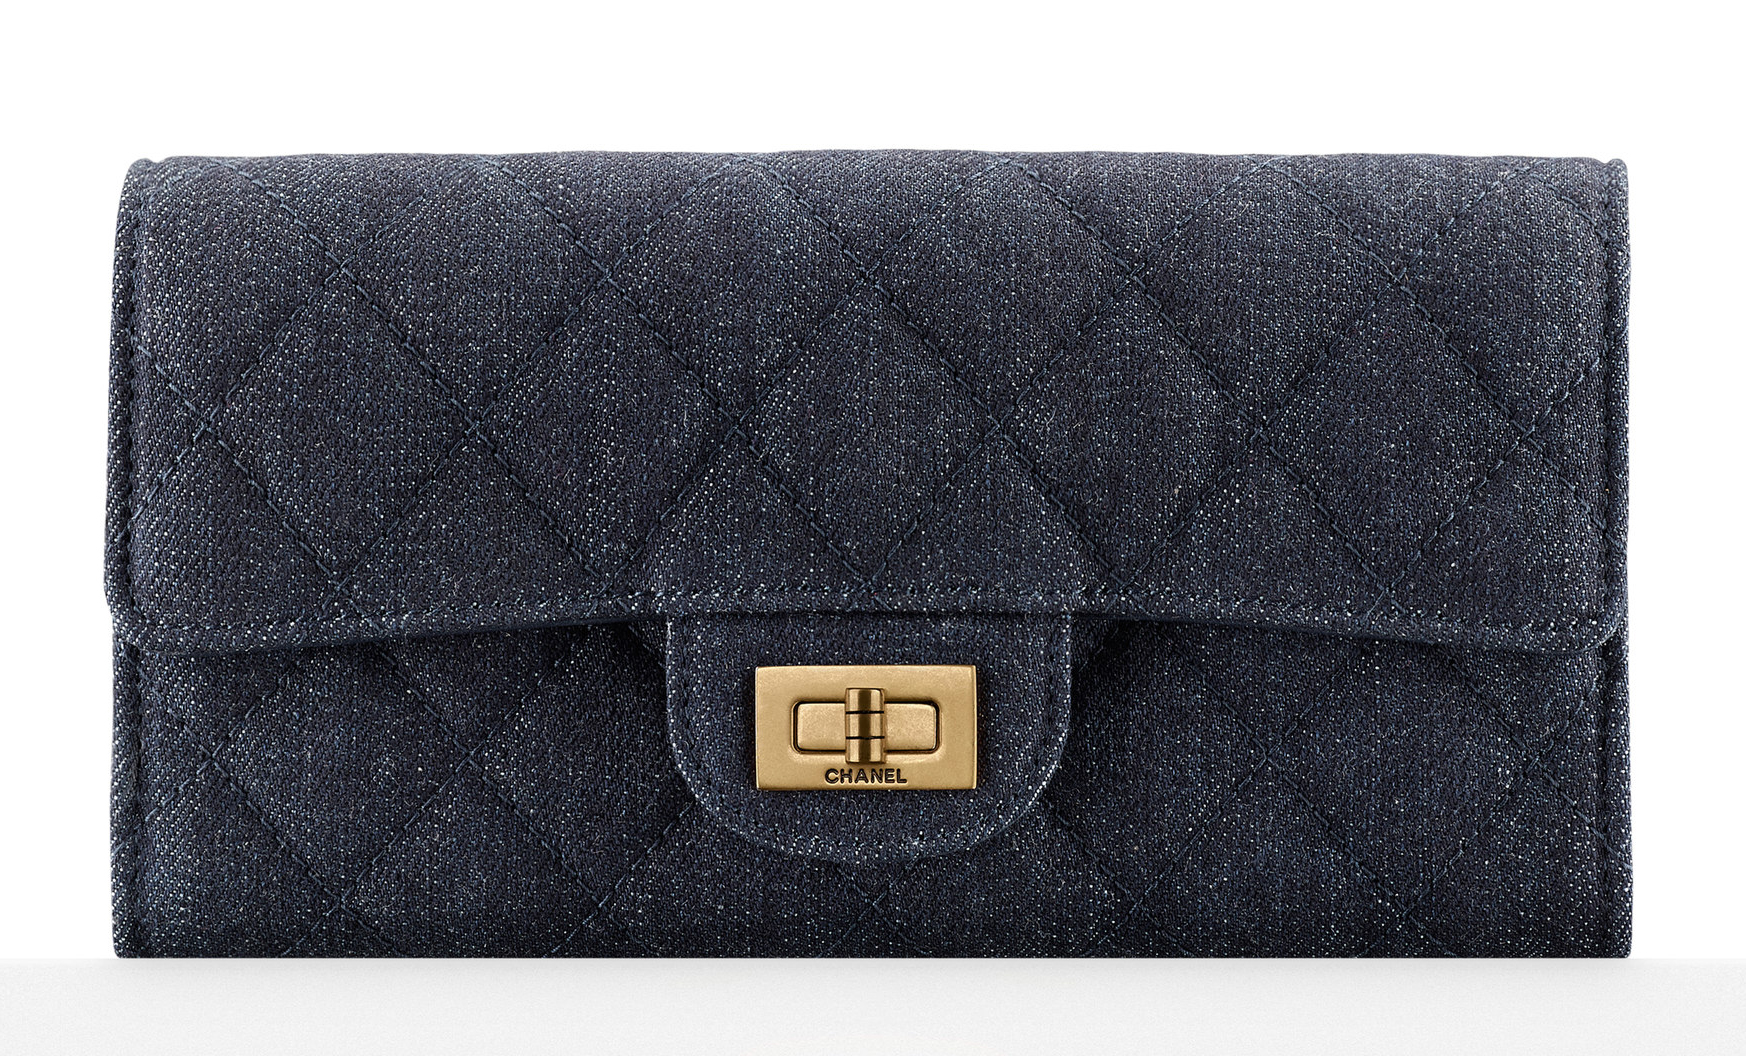 Chanel-Denim-Flap-Wallet-900